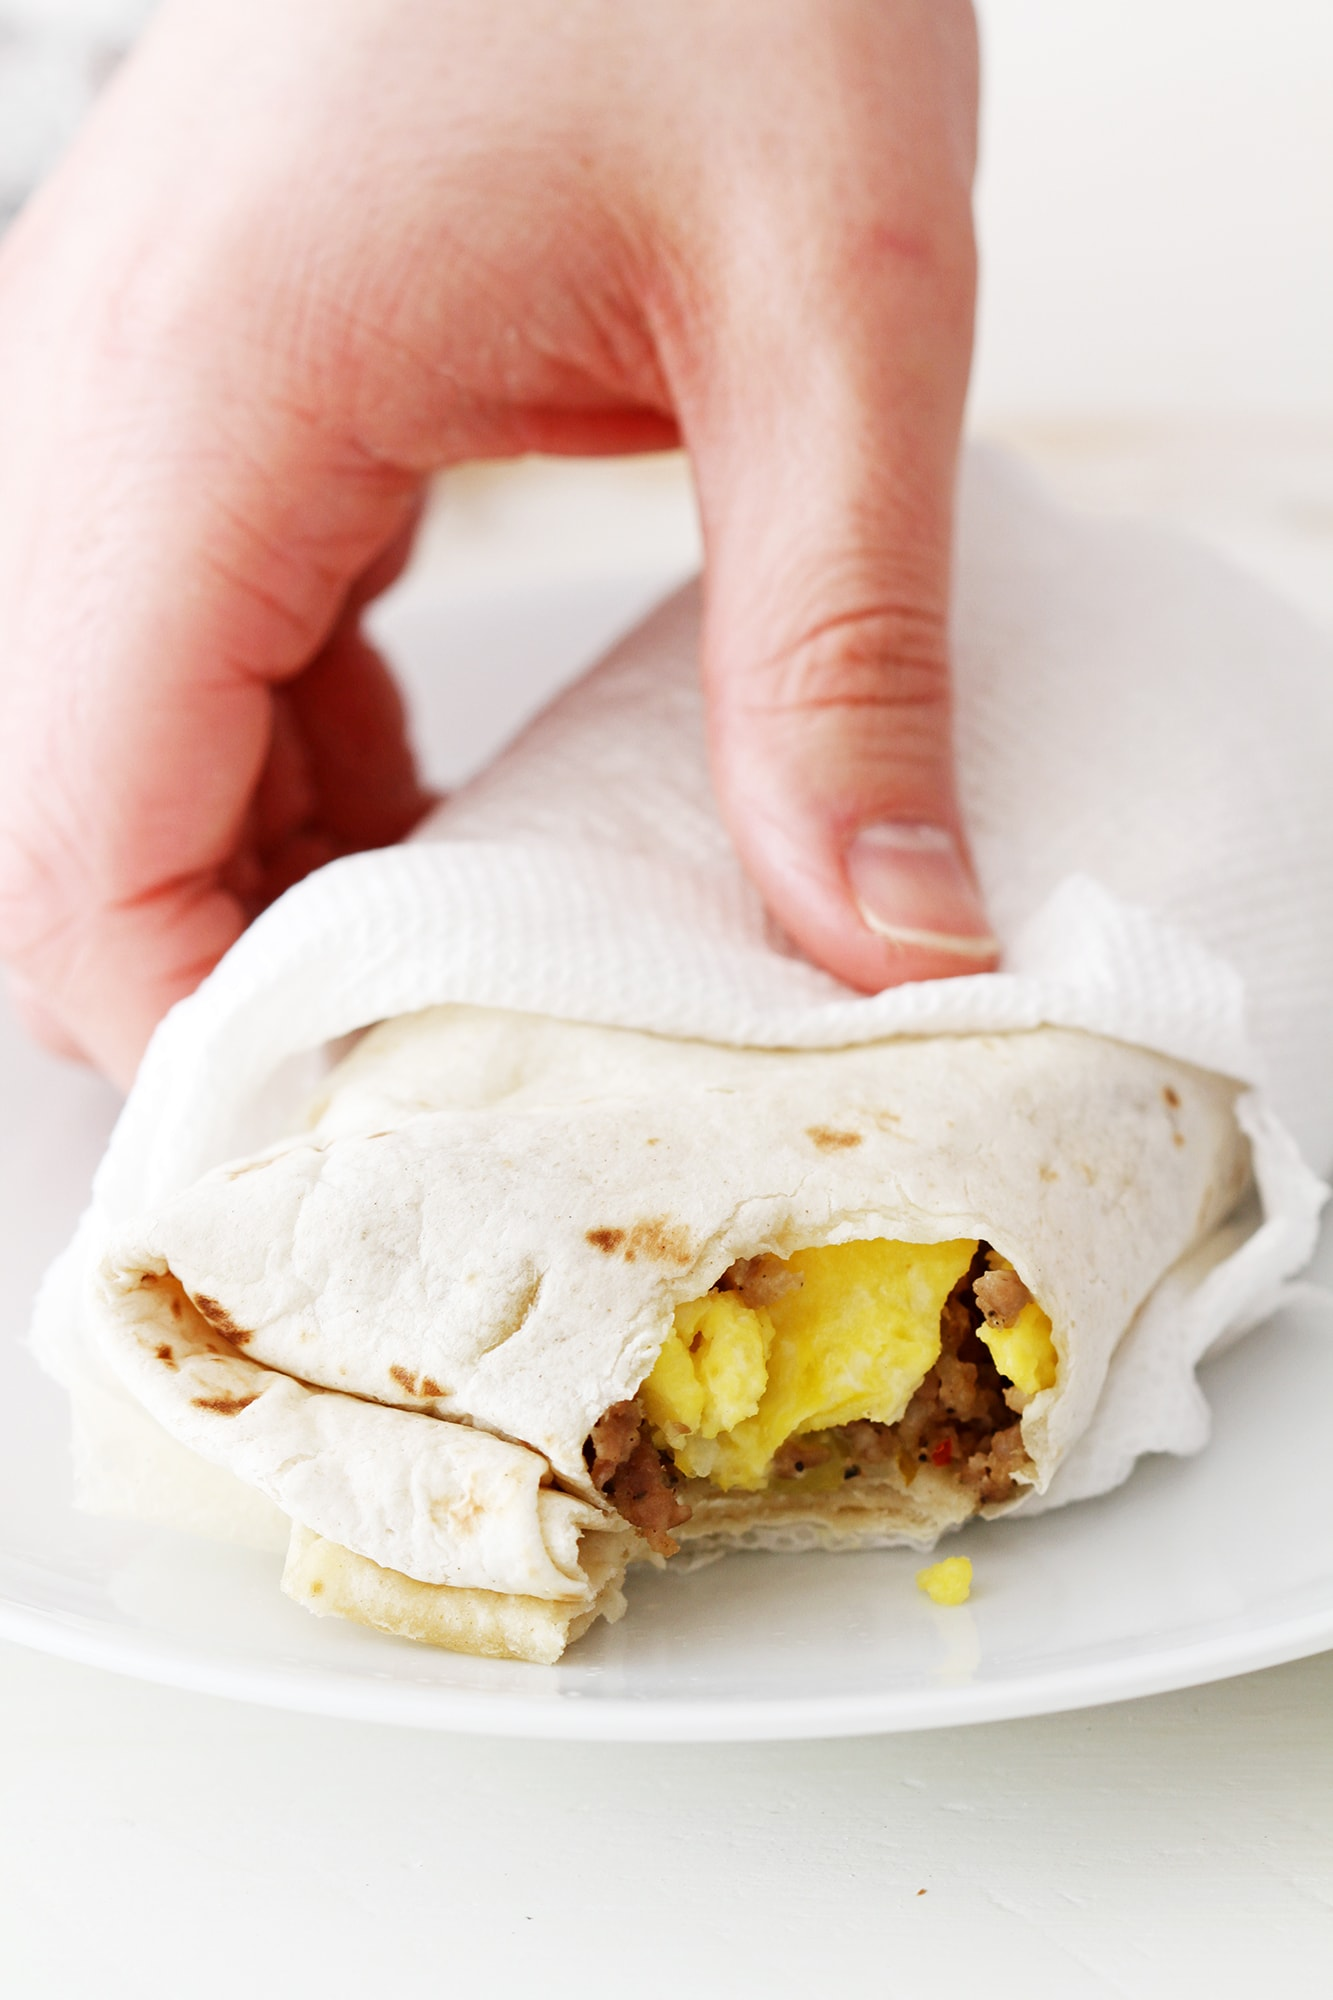 hand holding freezer breakfast burrito with bite taken